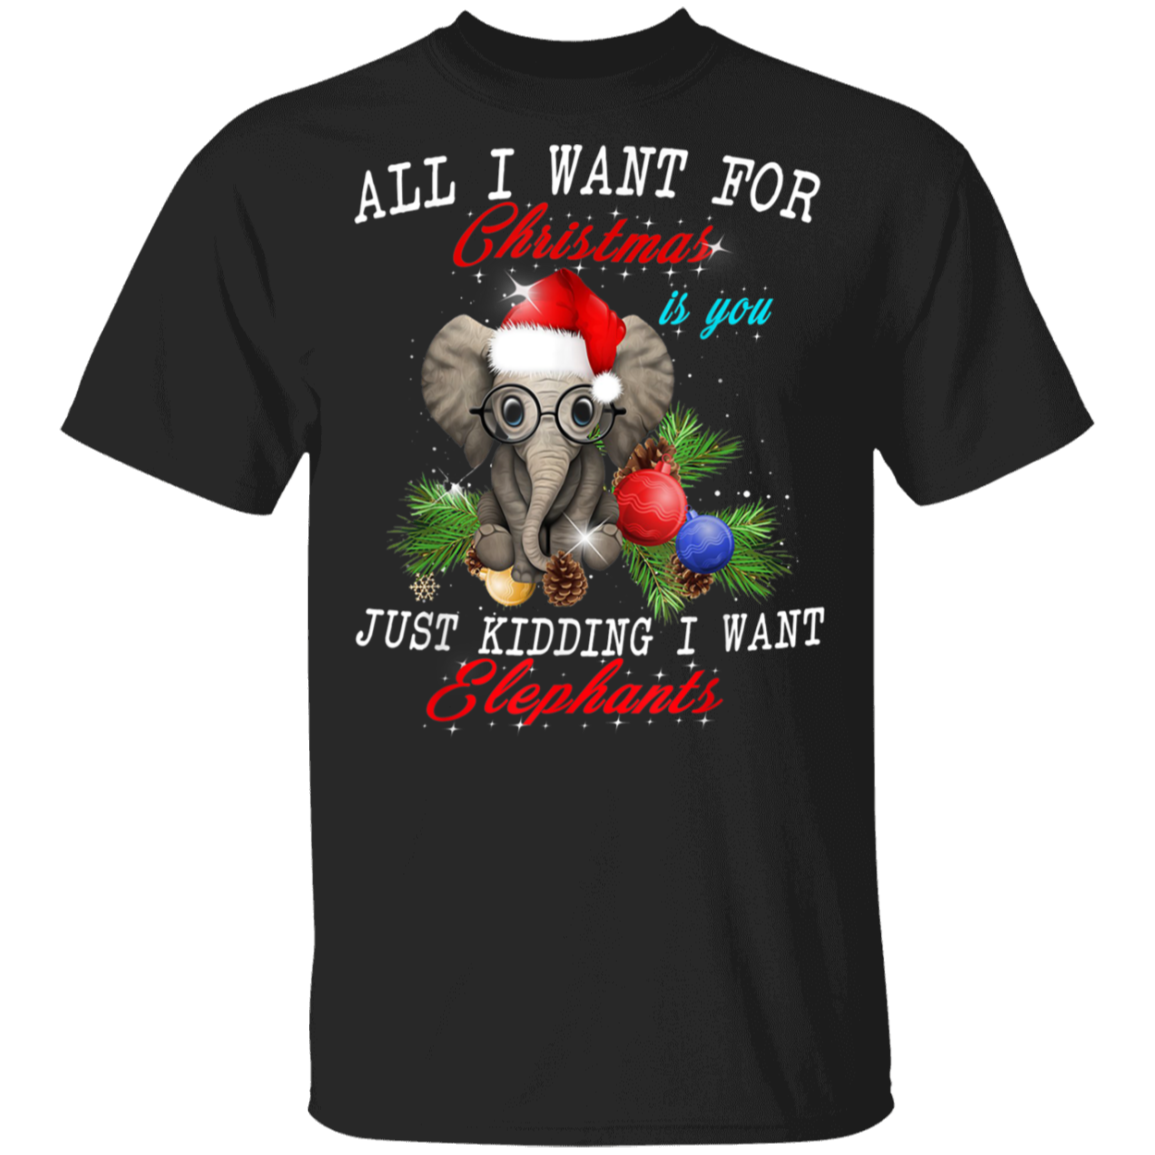 All I Want For Christmas Is Elephants Funny Xmas Gift Shirt Sweatshirt Pullover Hoodie